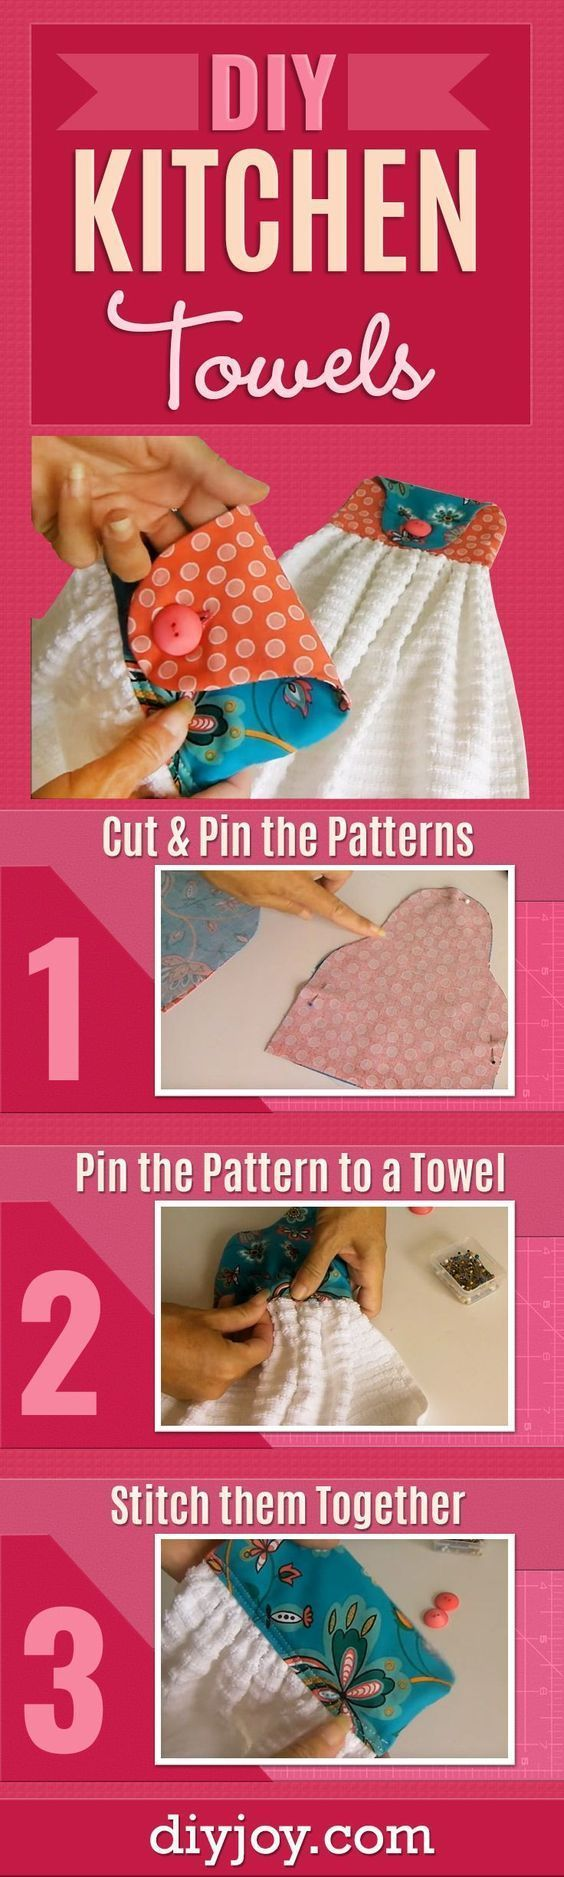 DIY Kitchen Towels – Cute and Easy Sewing Project that Makes a Cool DIY Christma…